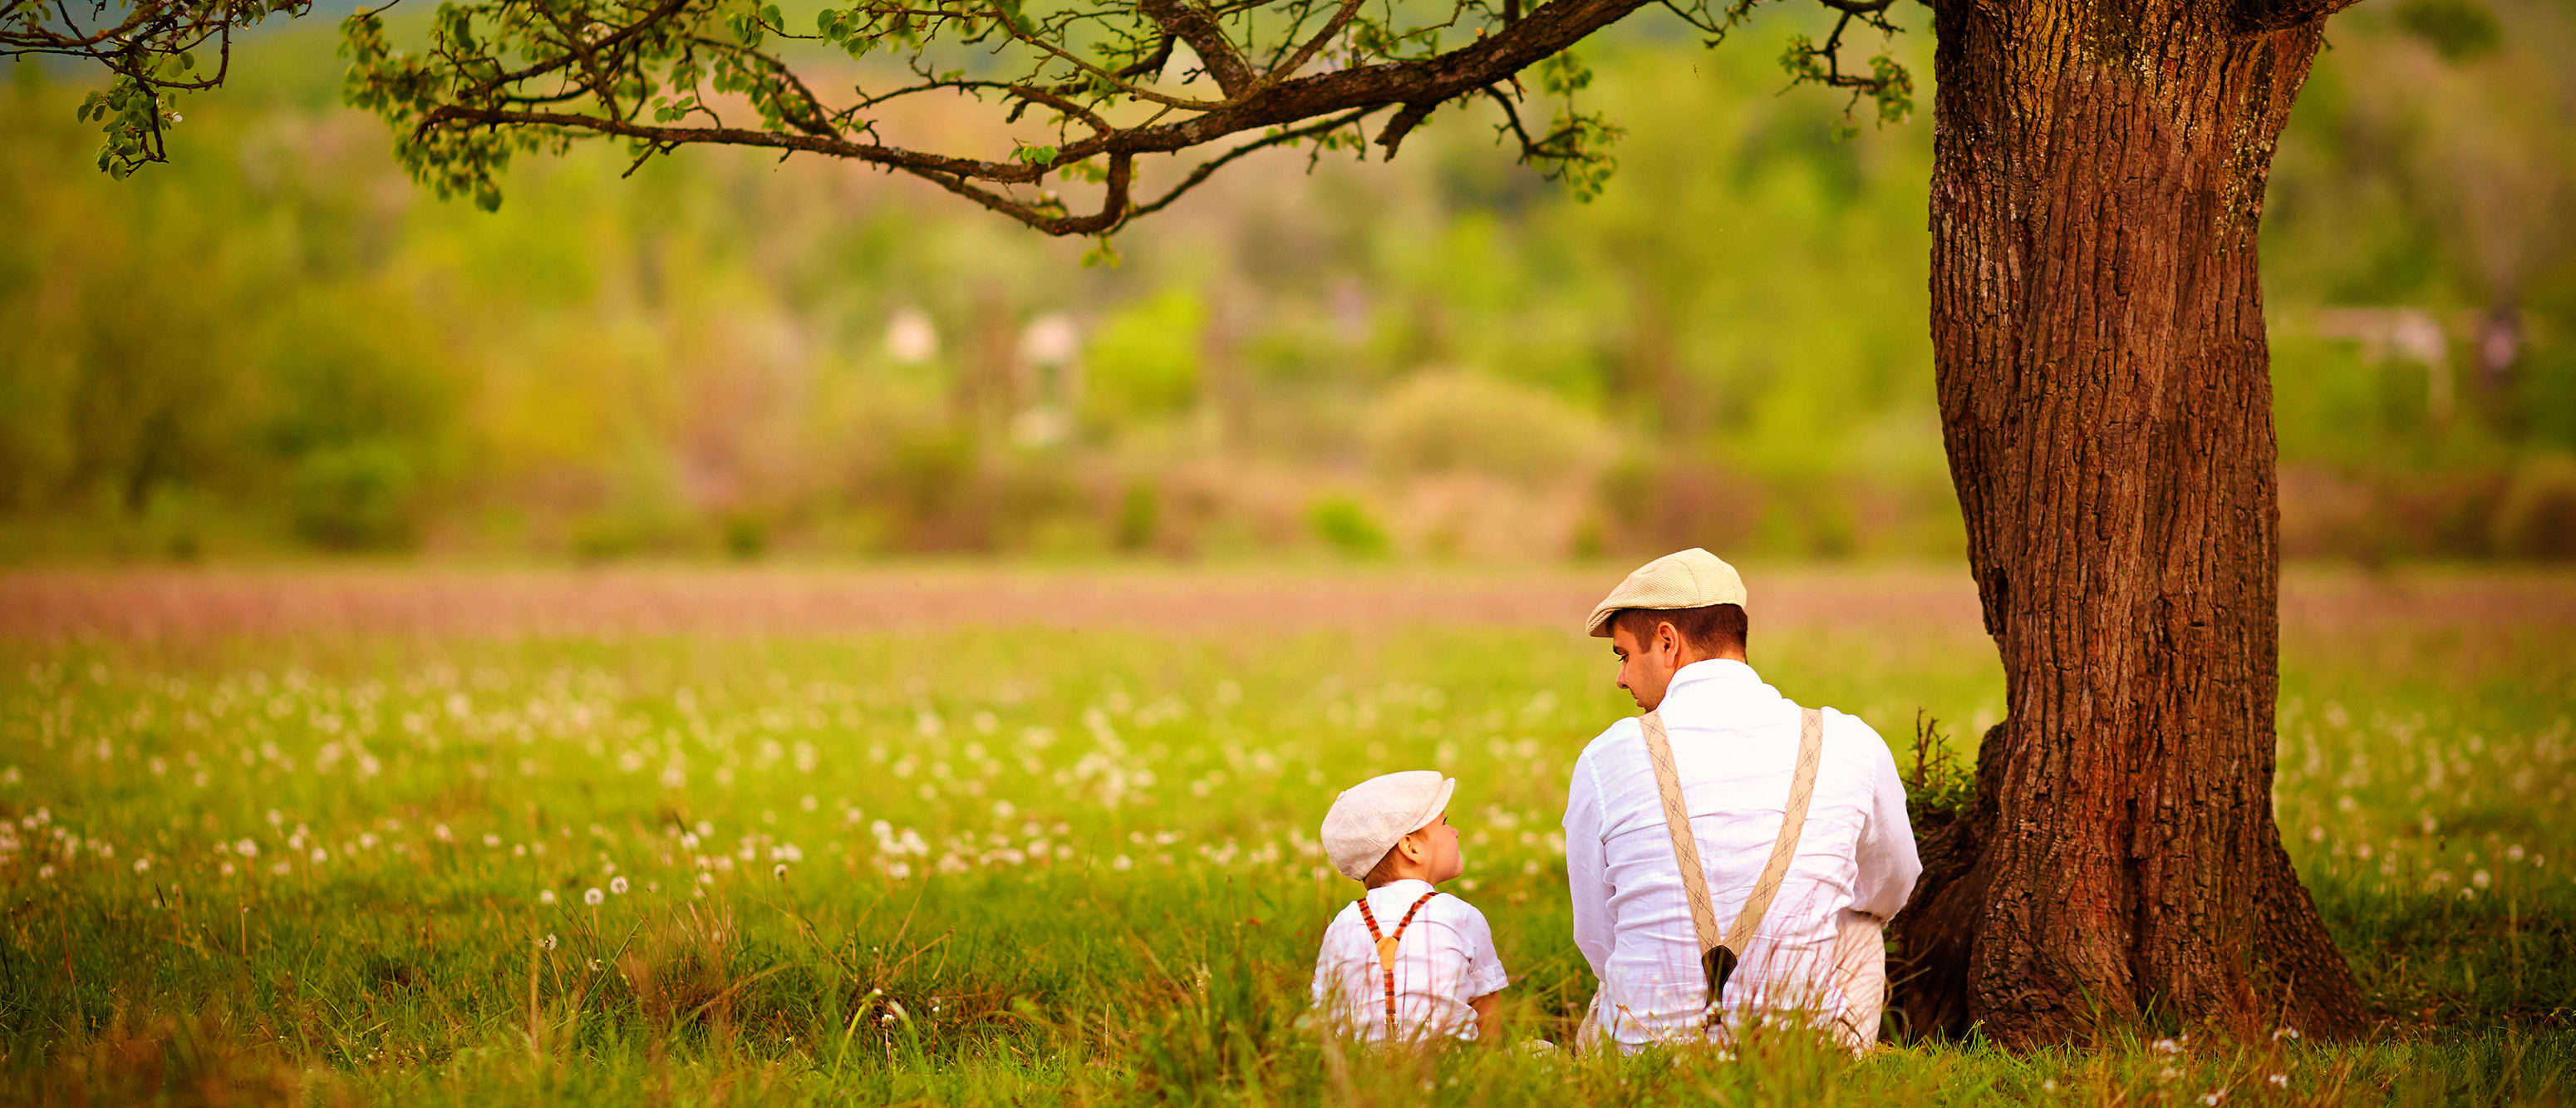 Father and son sitting under the tree on spring lawn/Shutterstock